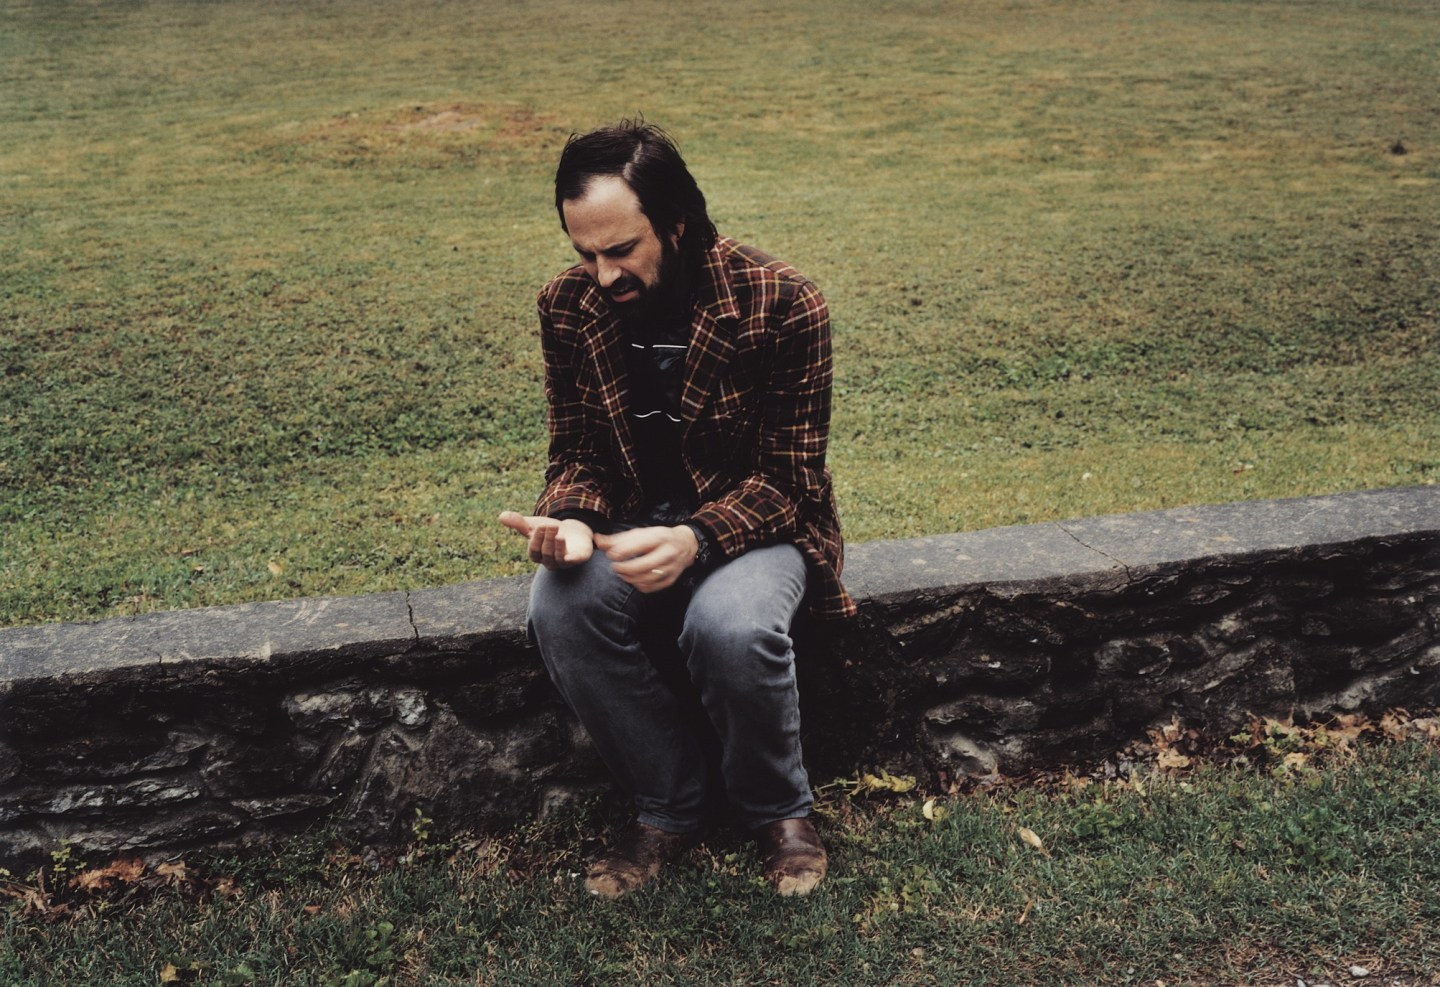 The FADER's 2005 interview with David Berman